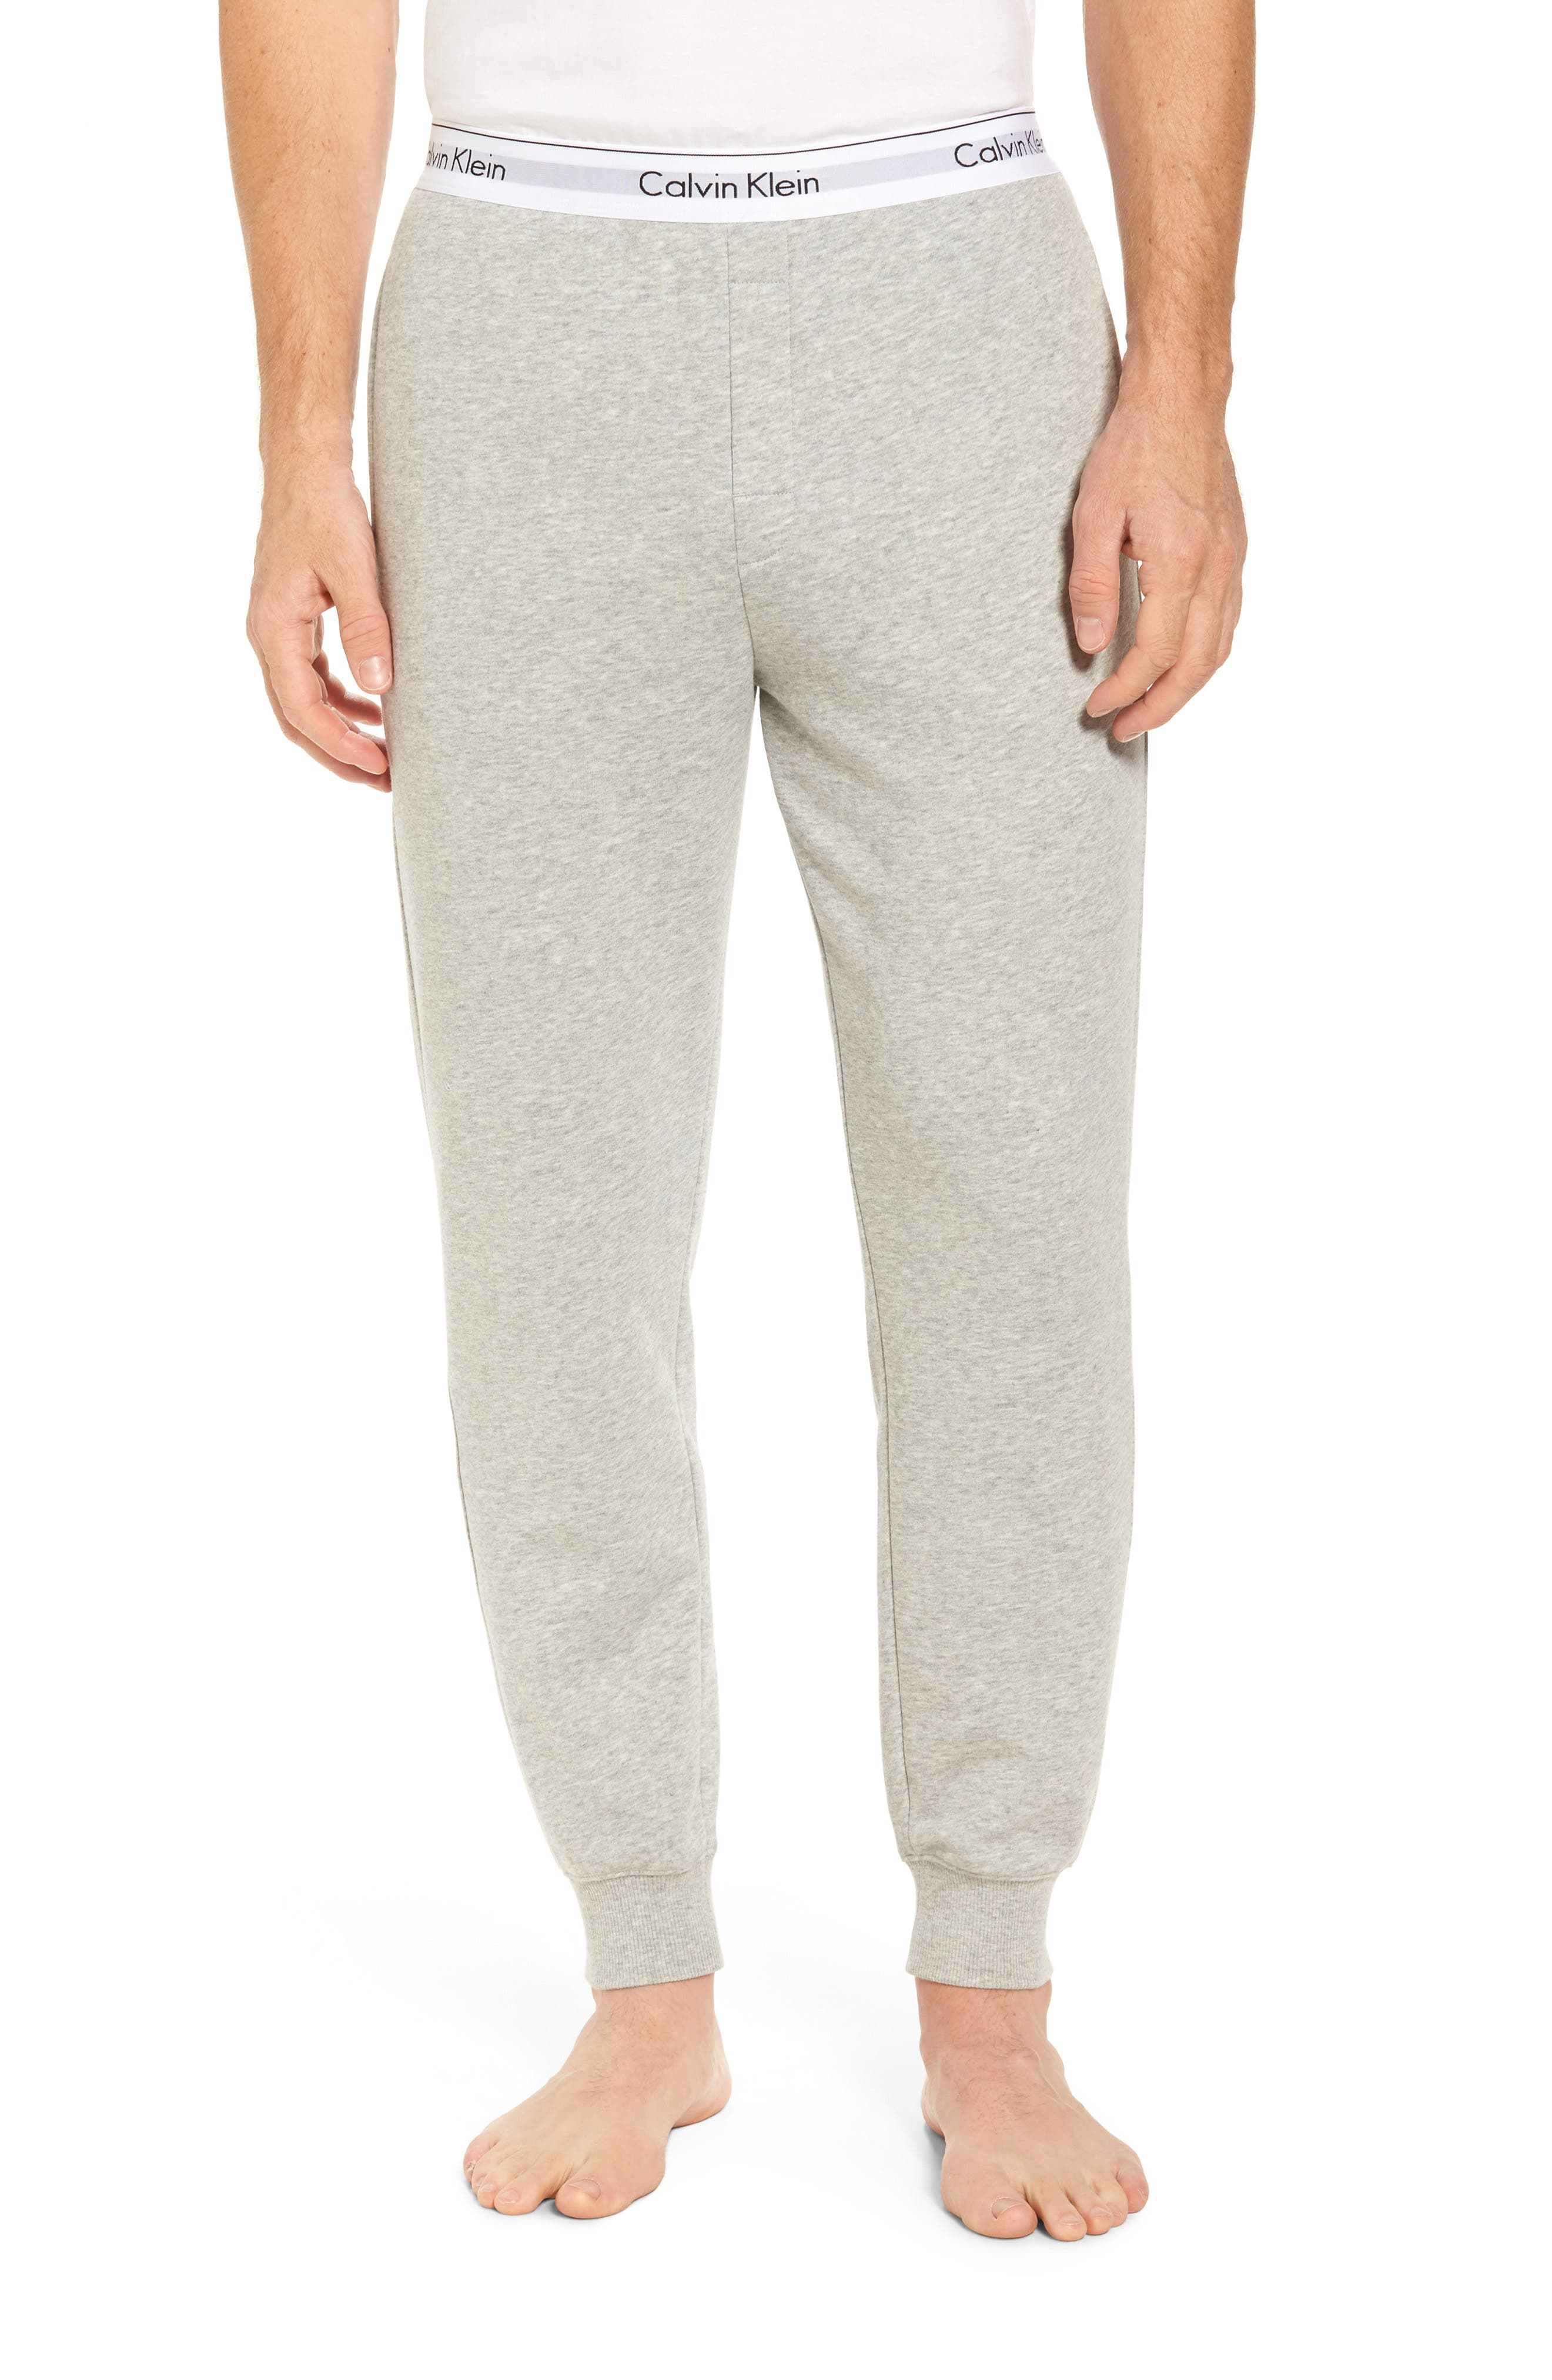 Calvin Klein Modern Cotton Blend Lounge Pants